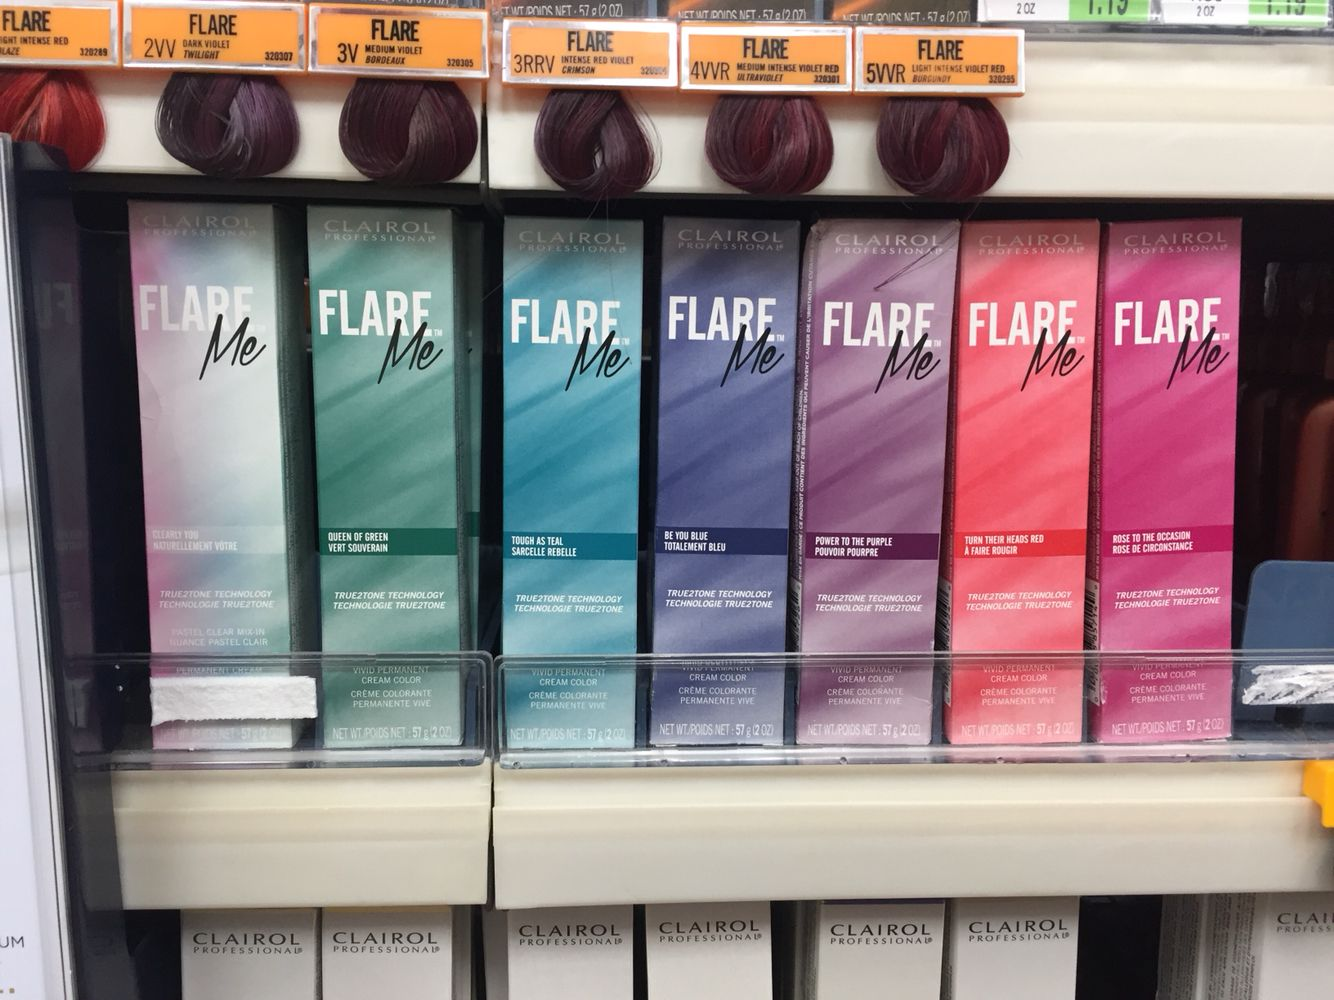 Clairol Flare Me Permanent Hair Dye In Fashion Colors Whaaat